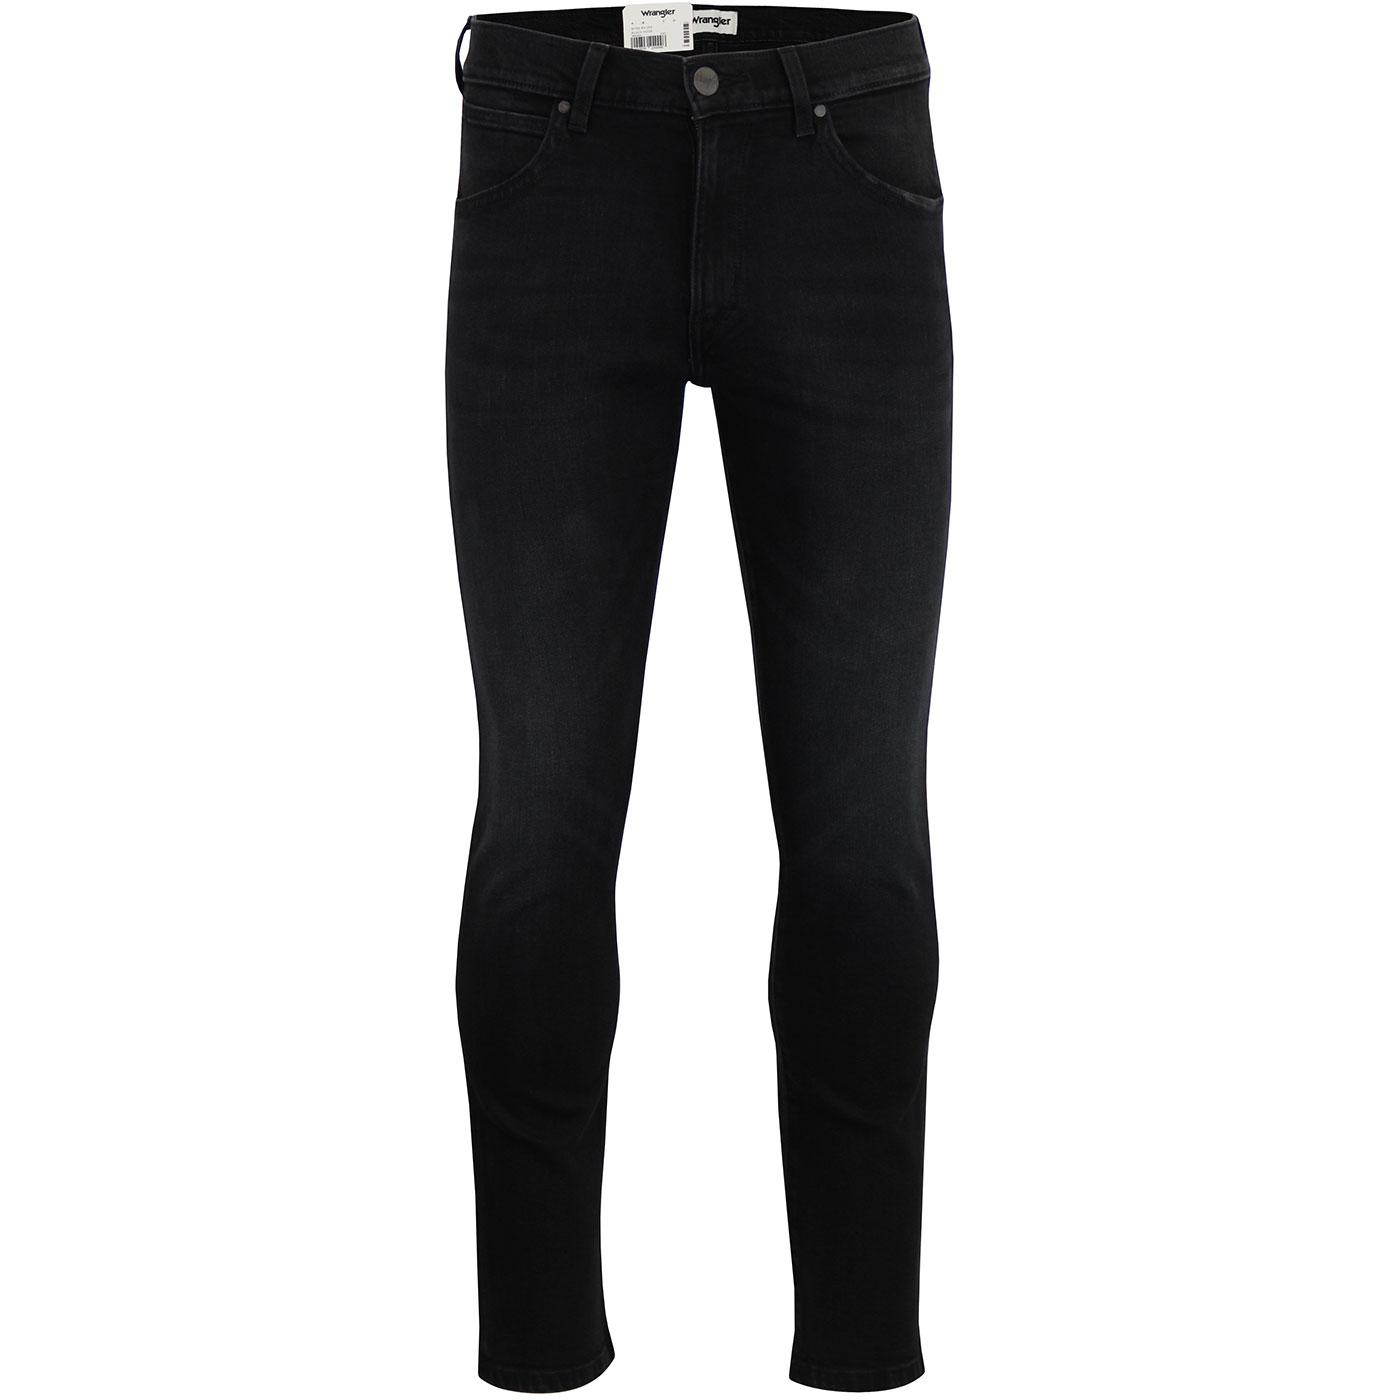 Larston WRANGLER Slim Tapered Jeans BLACK HOOK